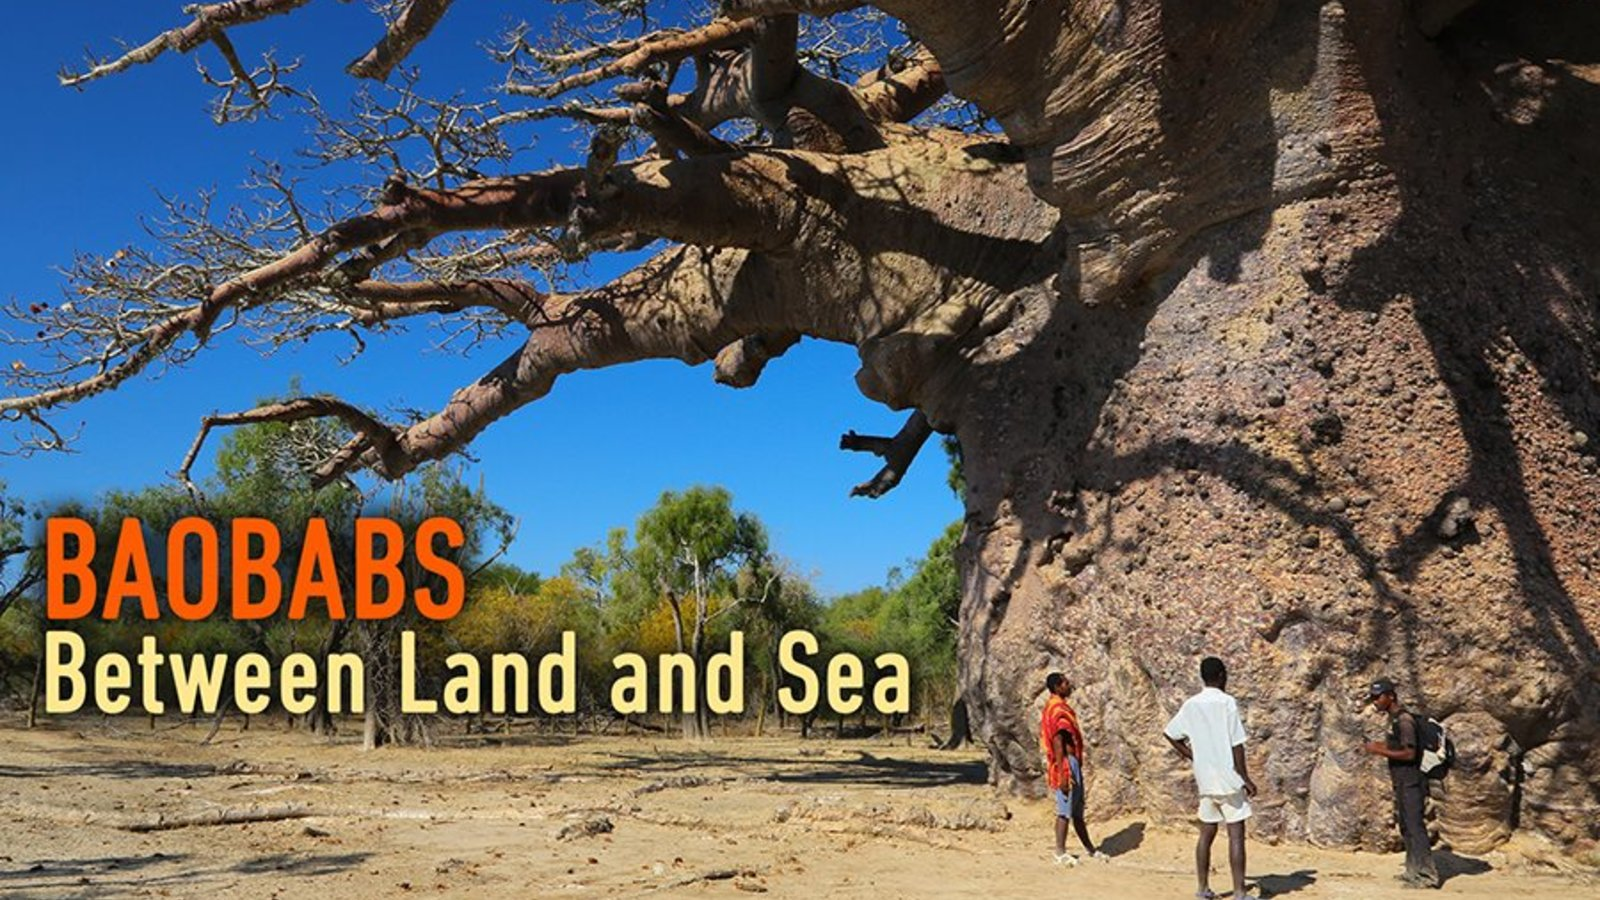 Baobabs - Between Land and Sea